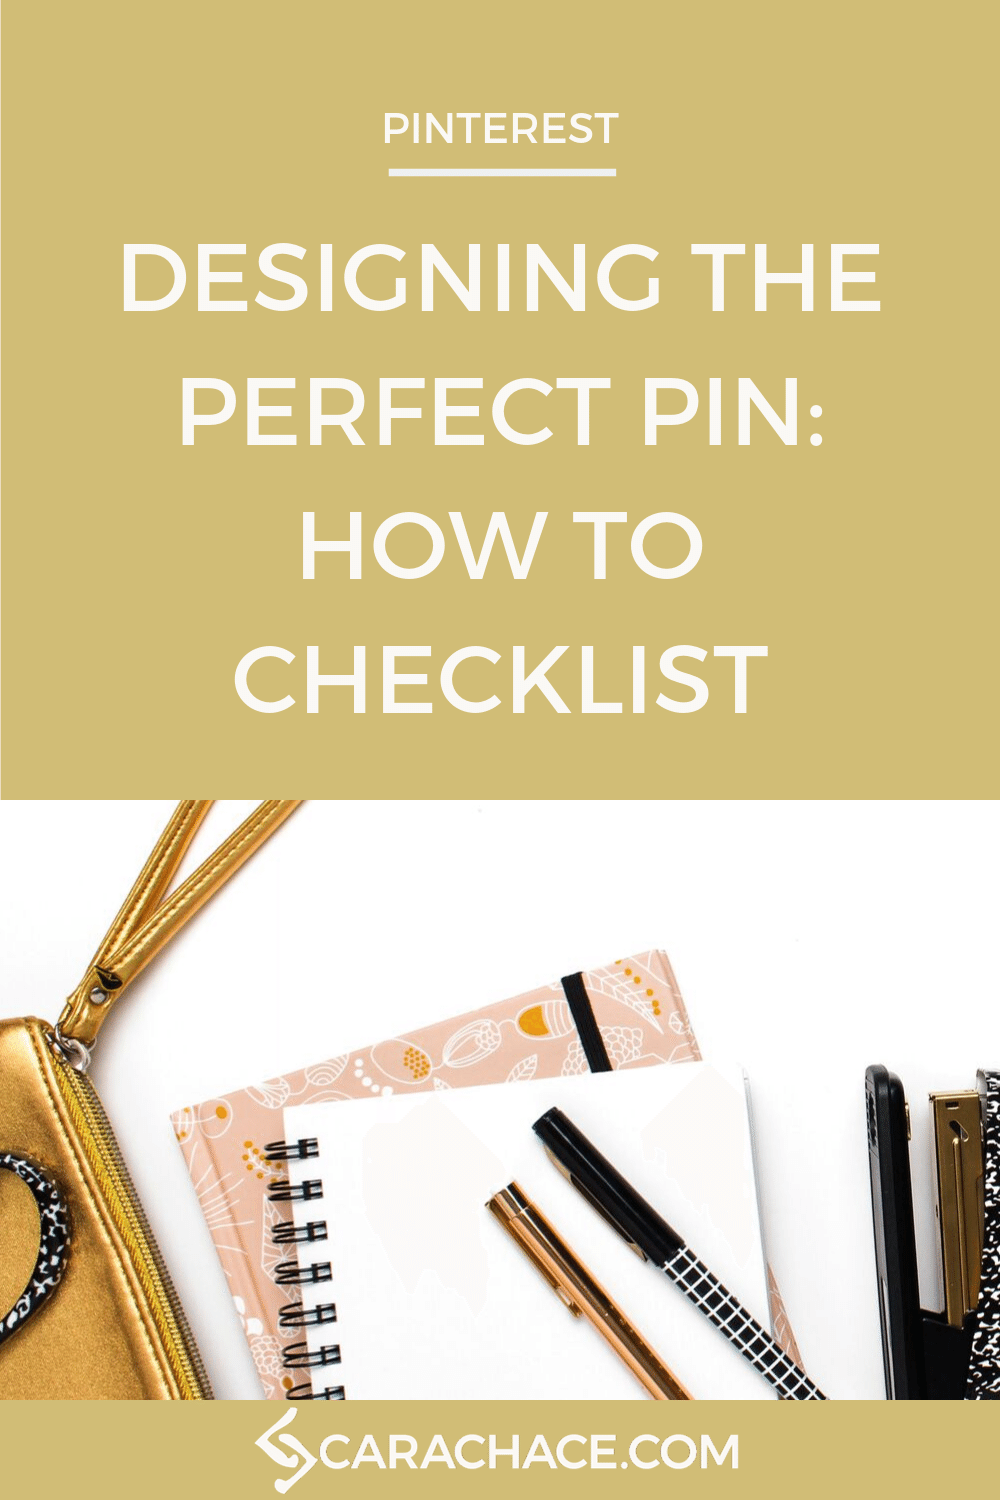 Design the perfect pin: Learn the best practices for creating graphics on Pinterest, plus a step-by-step checklist to help you create your pins. #carachace #graphicdesign #pinterestmarketing